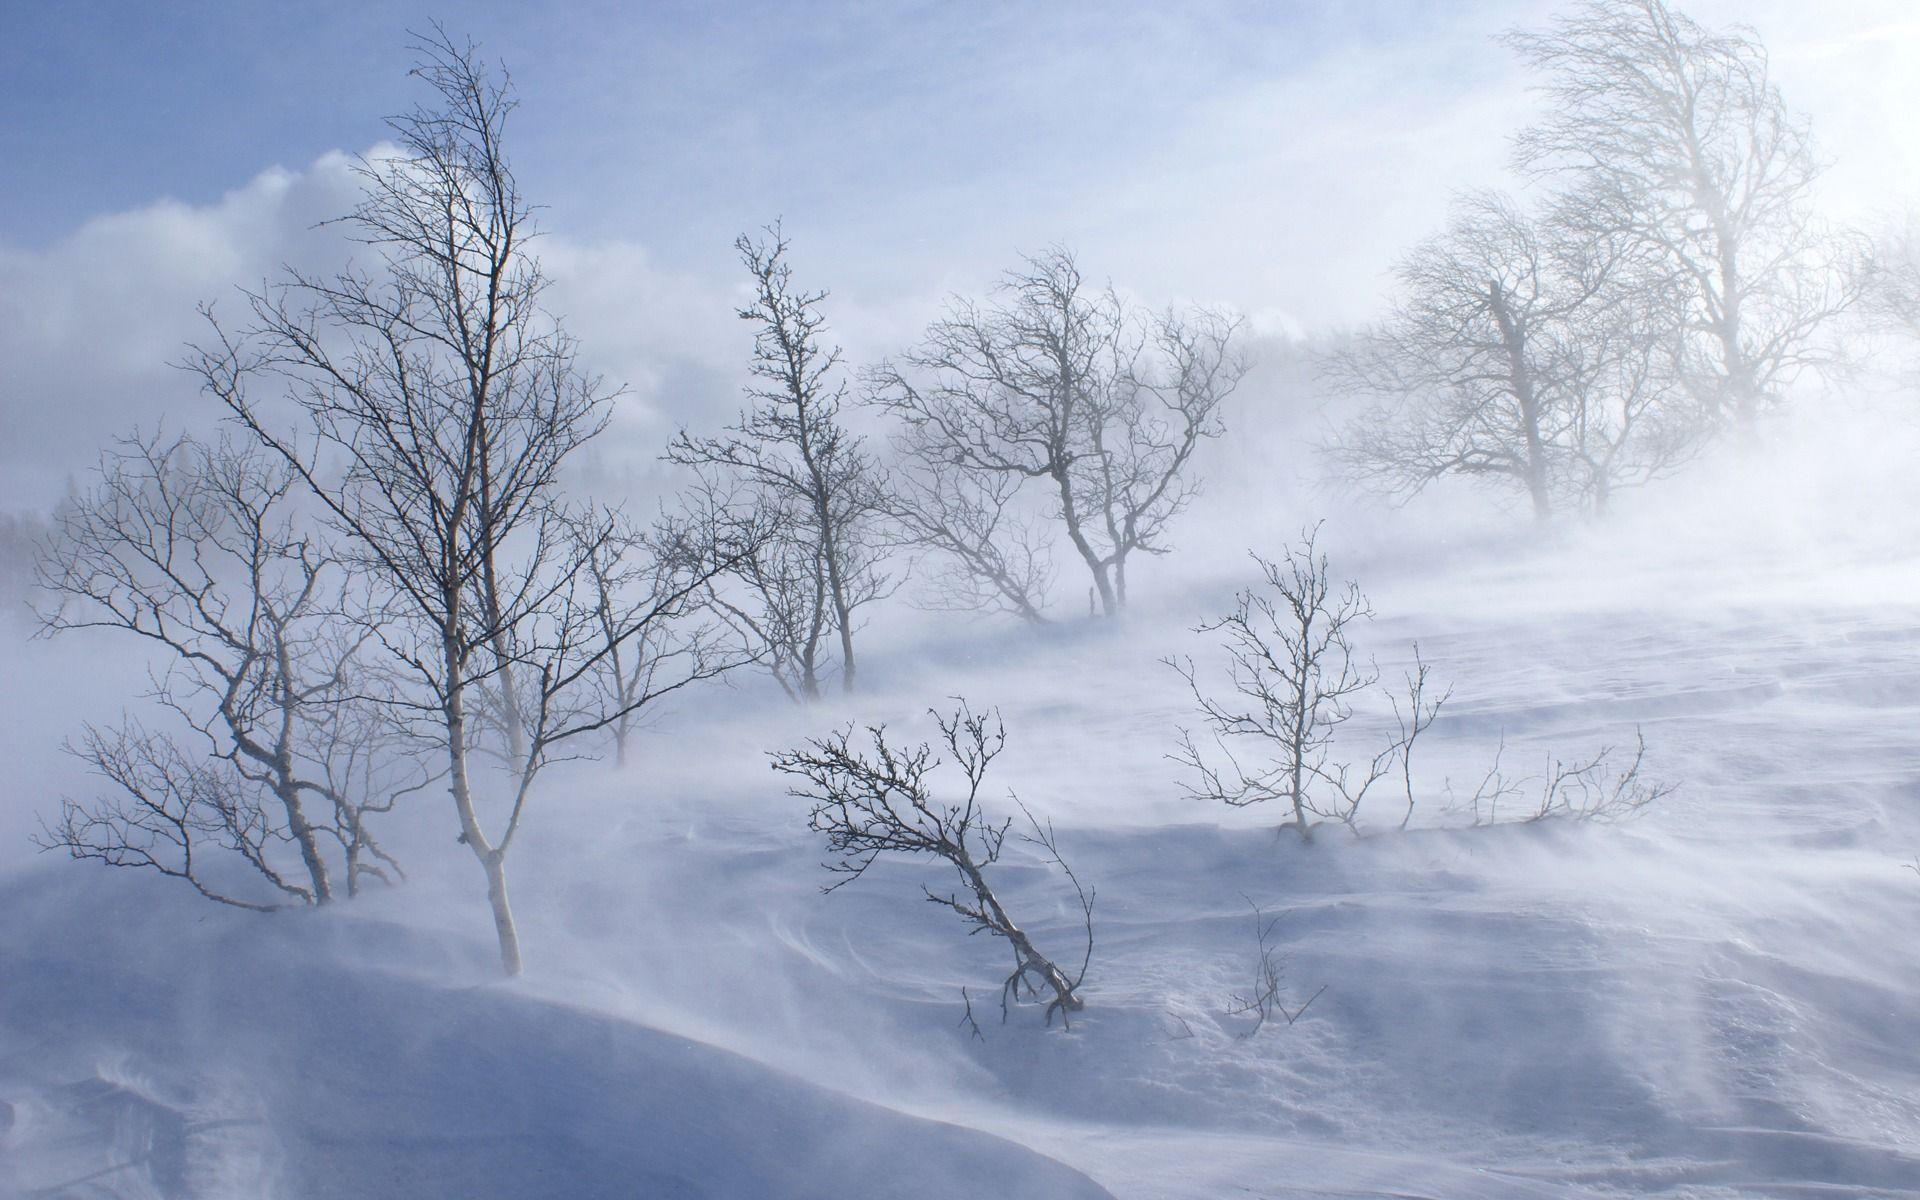 Snow Storm Wallpapers - Full HD wallpaper search